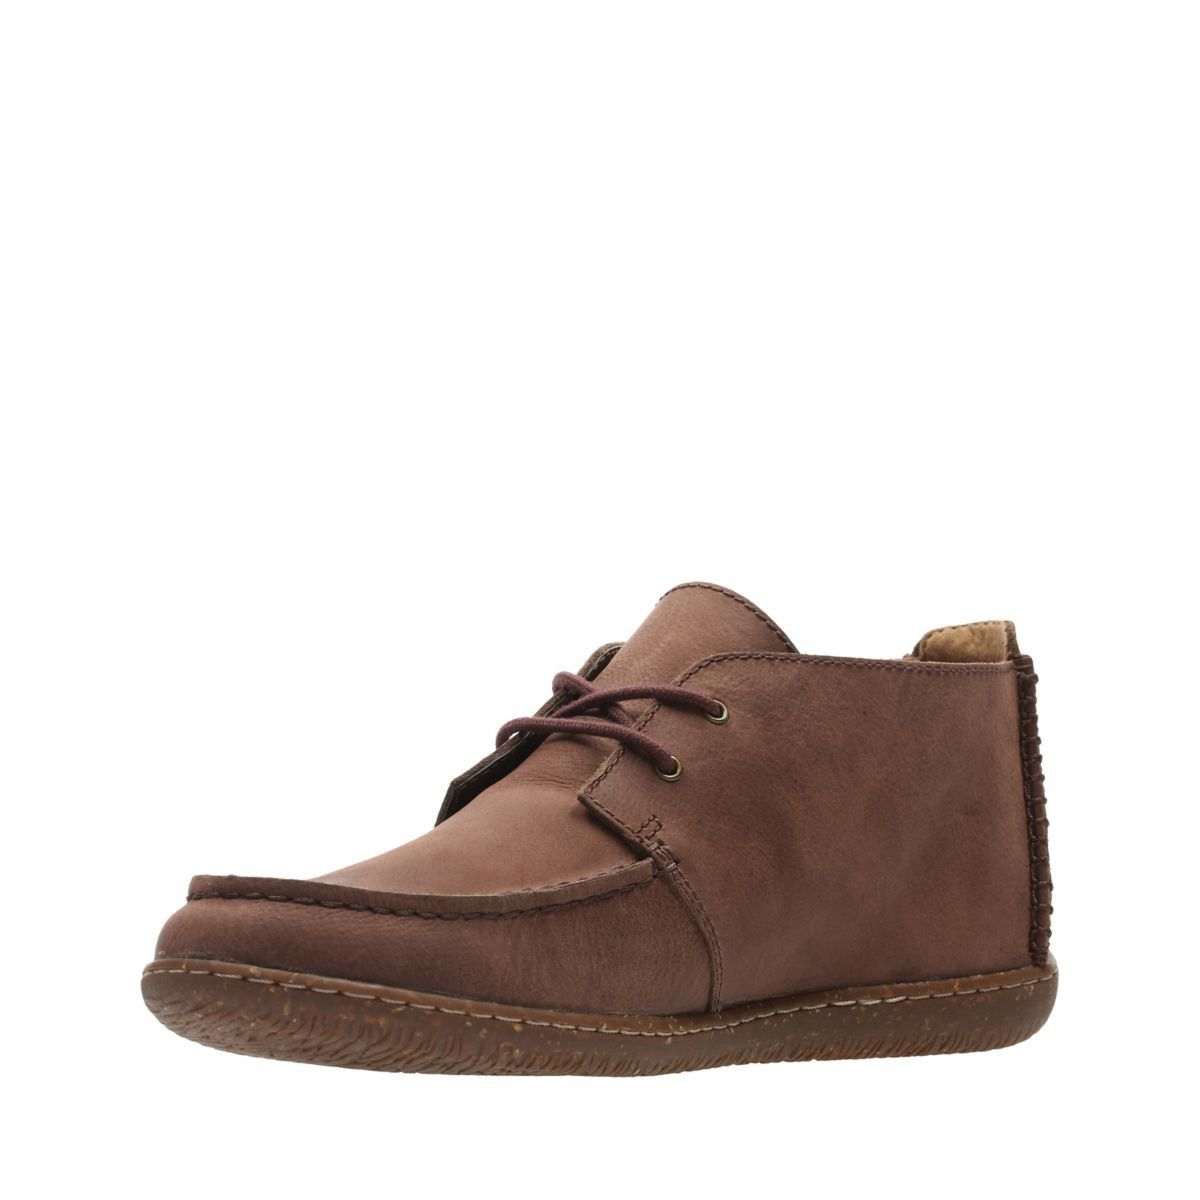 f78cd68878f2e3 Clarks Saltash Mid - Mens Boots British Tan Leather 8 | Products ...